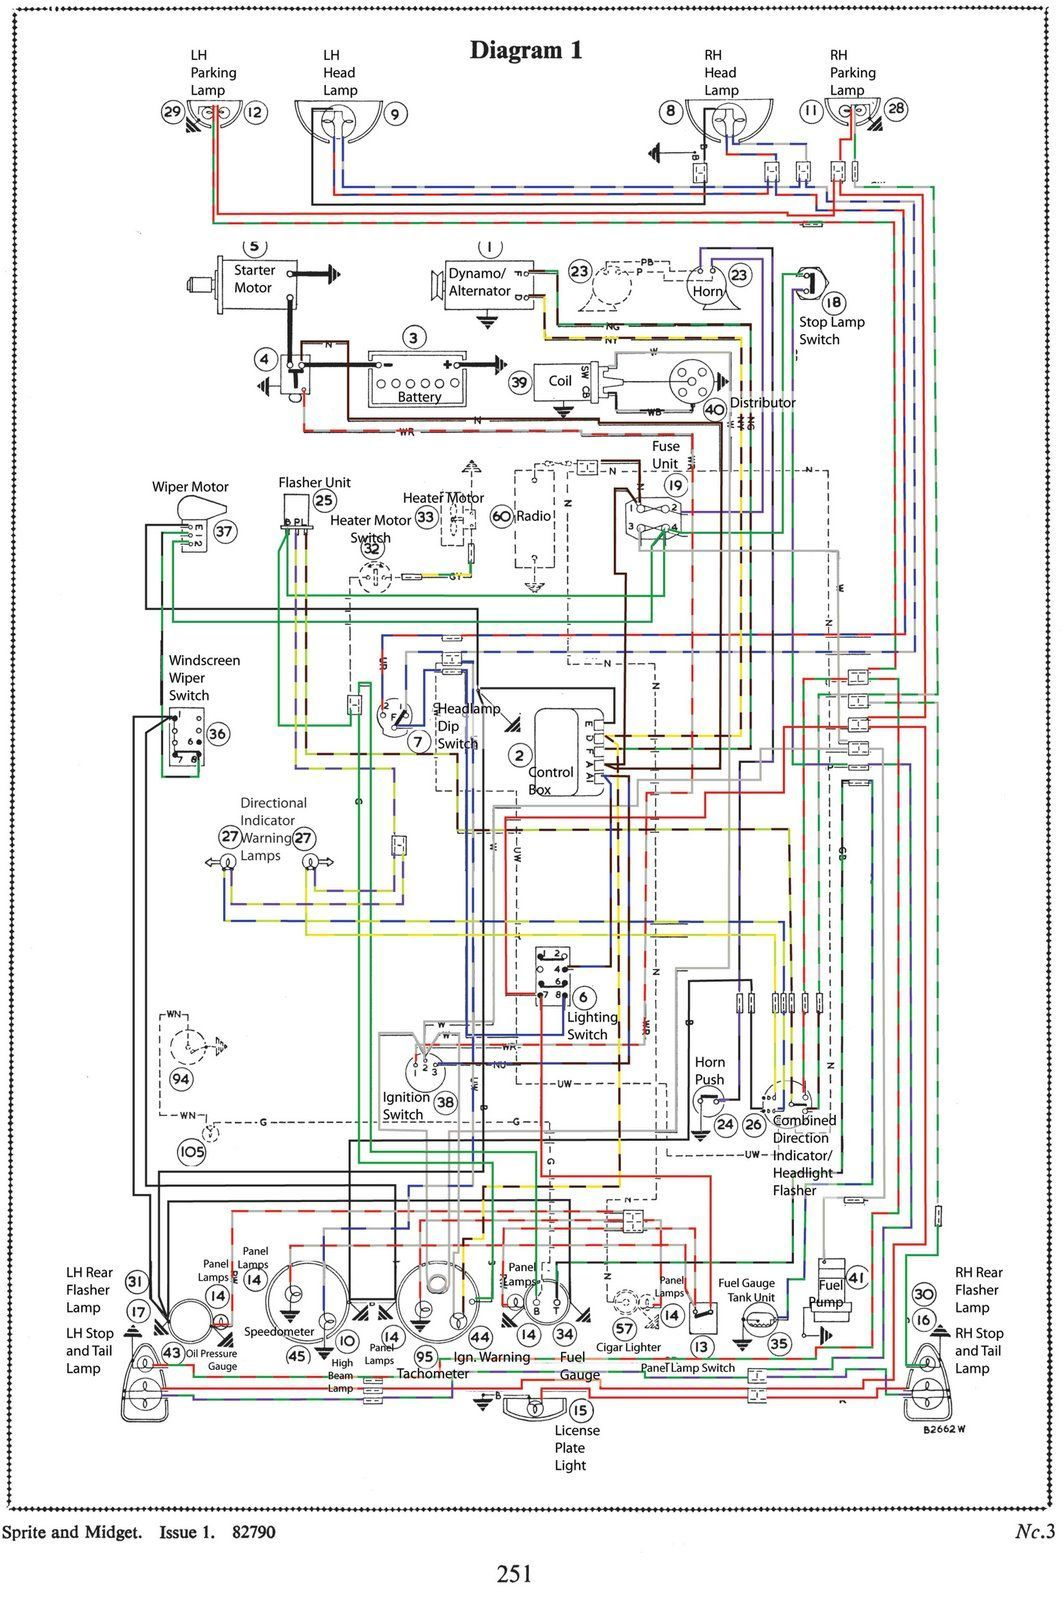 DIAGRAM] Trane Wiring Diagrams 2311 3329 FULL Version HD Quality 2311 3329  - HIERARCHICALSTRUCTURES.NIBERMA.FRhierarchicalstructures.niberma.fr